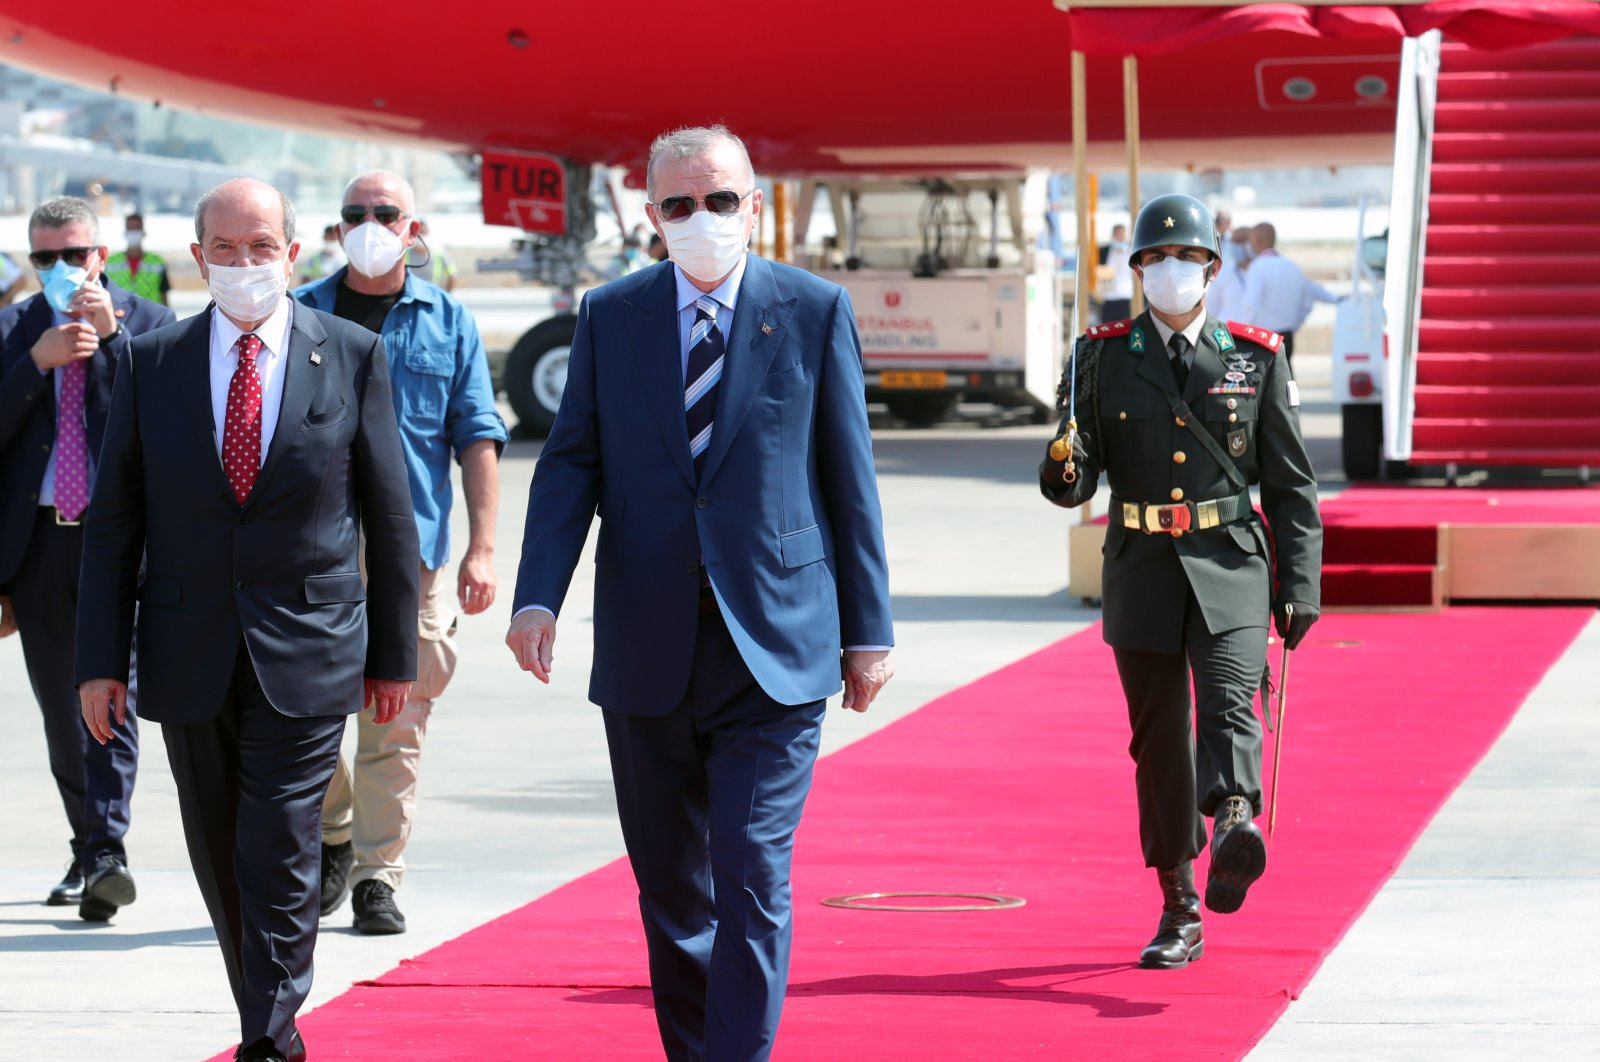 President Recep Tayyip Erdoğan (C) and his Turkish Cypriot counterpart Ersin Tatar walk on the red carpet during a welcoming ceremony at the Ercan Airport in Lefkoşa (Nicosia), Turkish Cyprus, on July 19, 2021. (AA Photo)